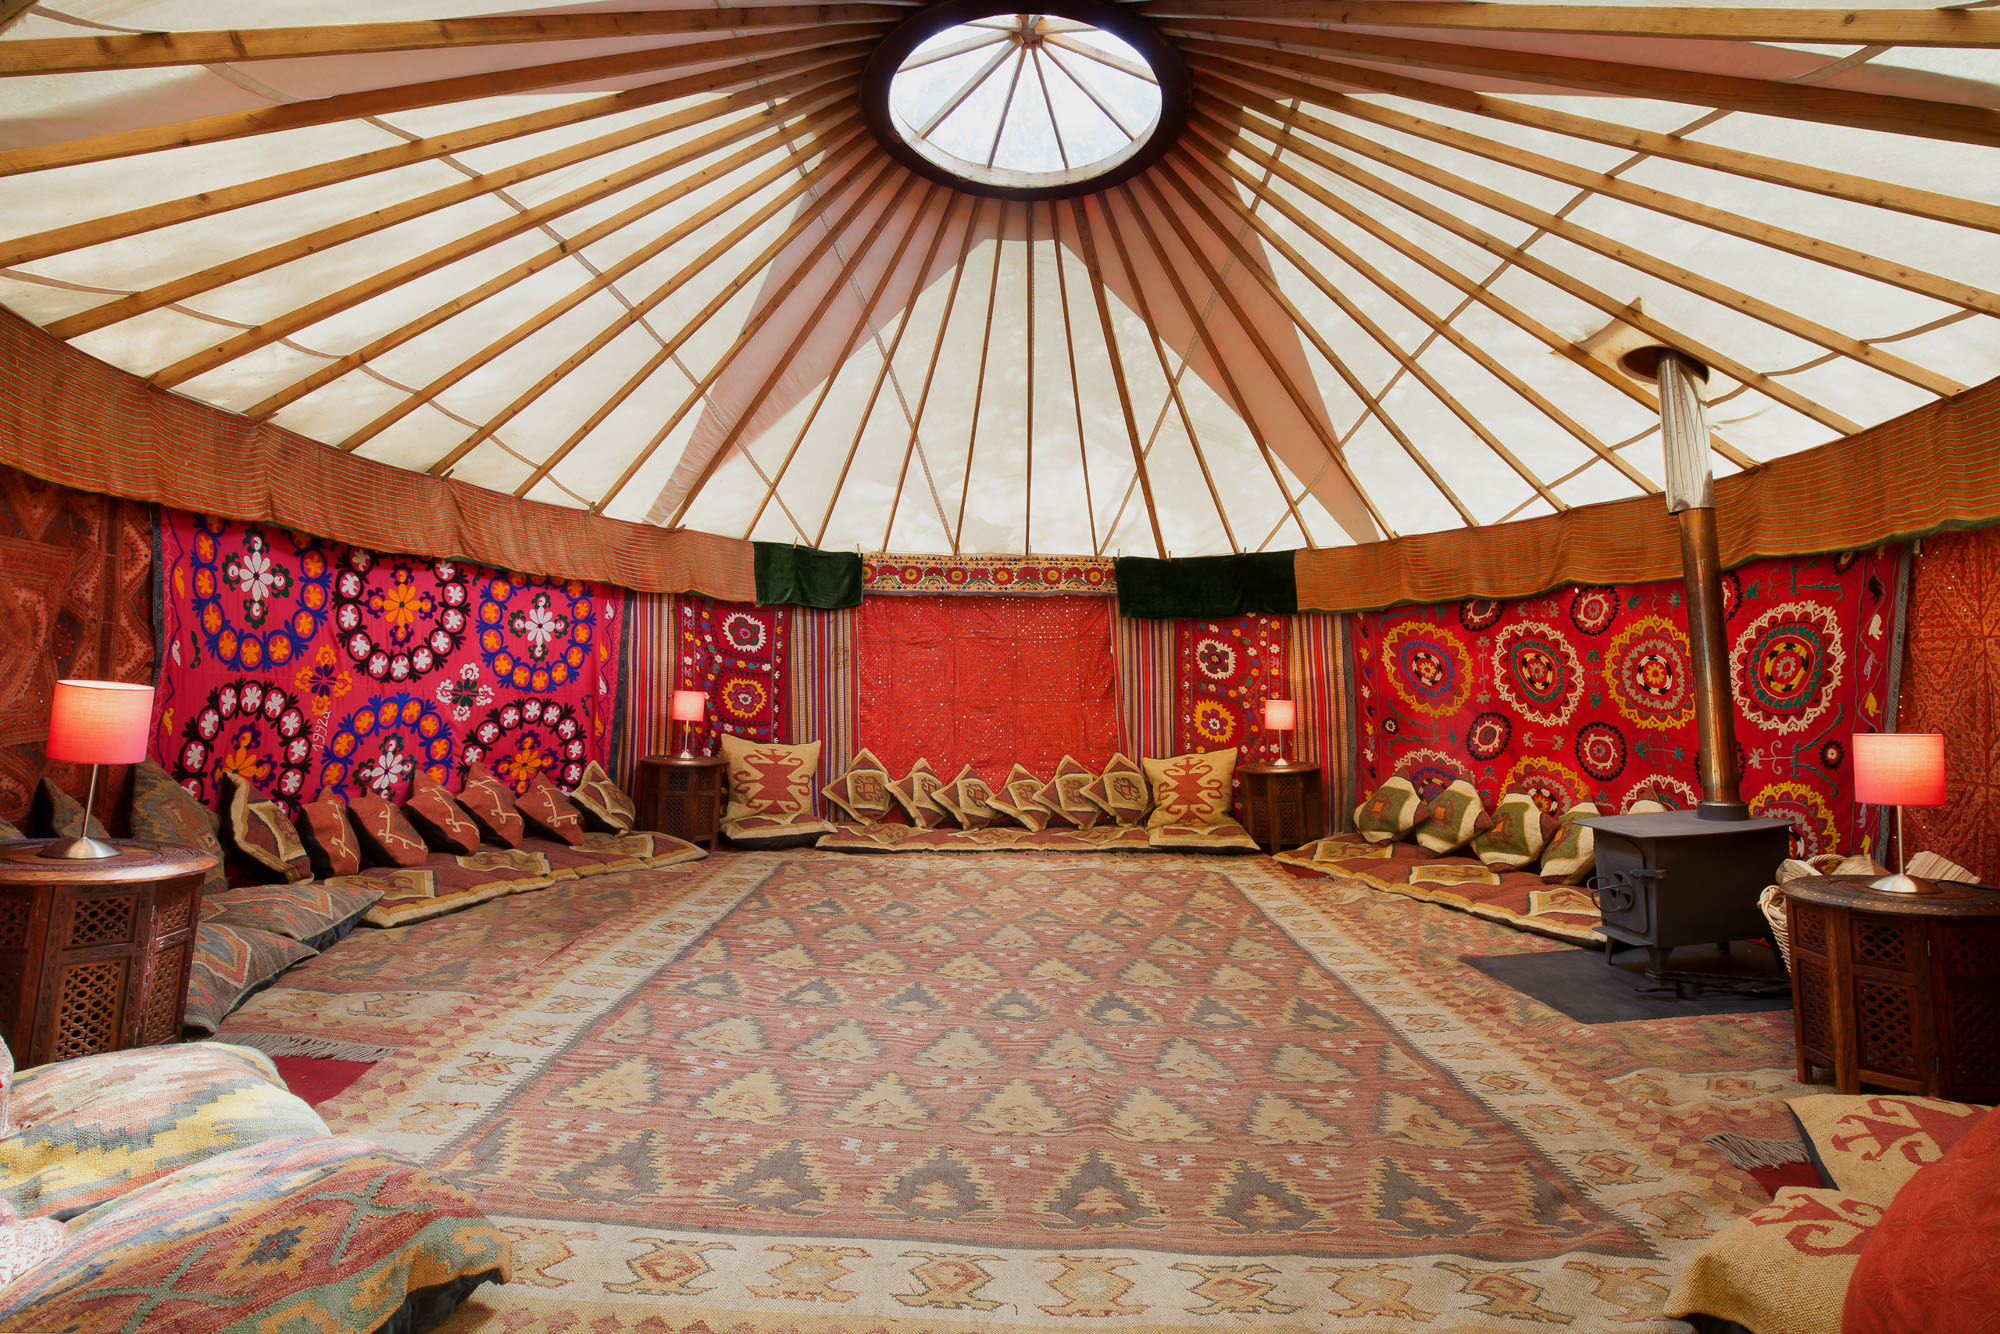 decorative yurts for hire